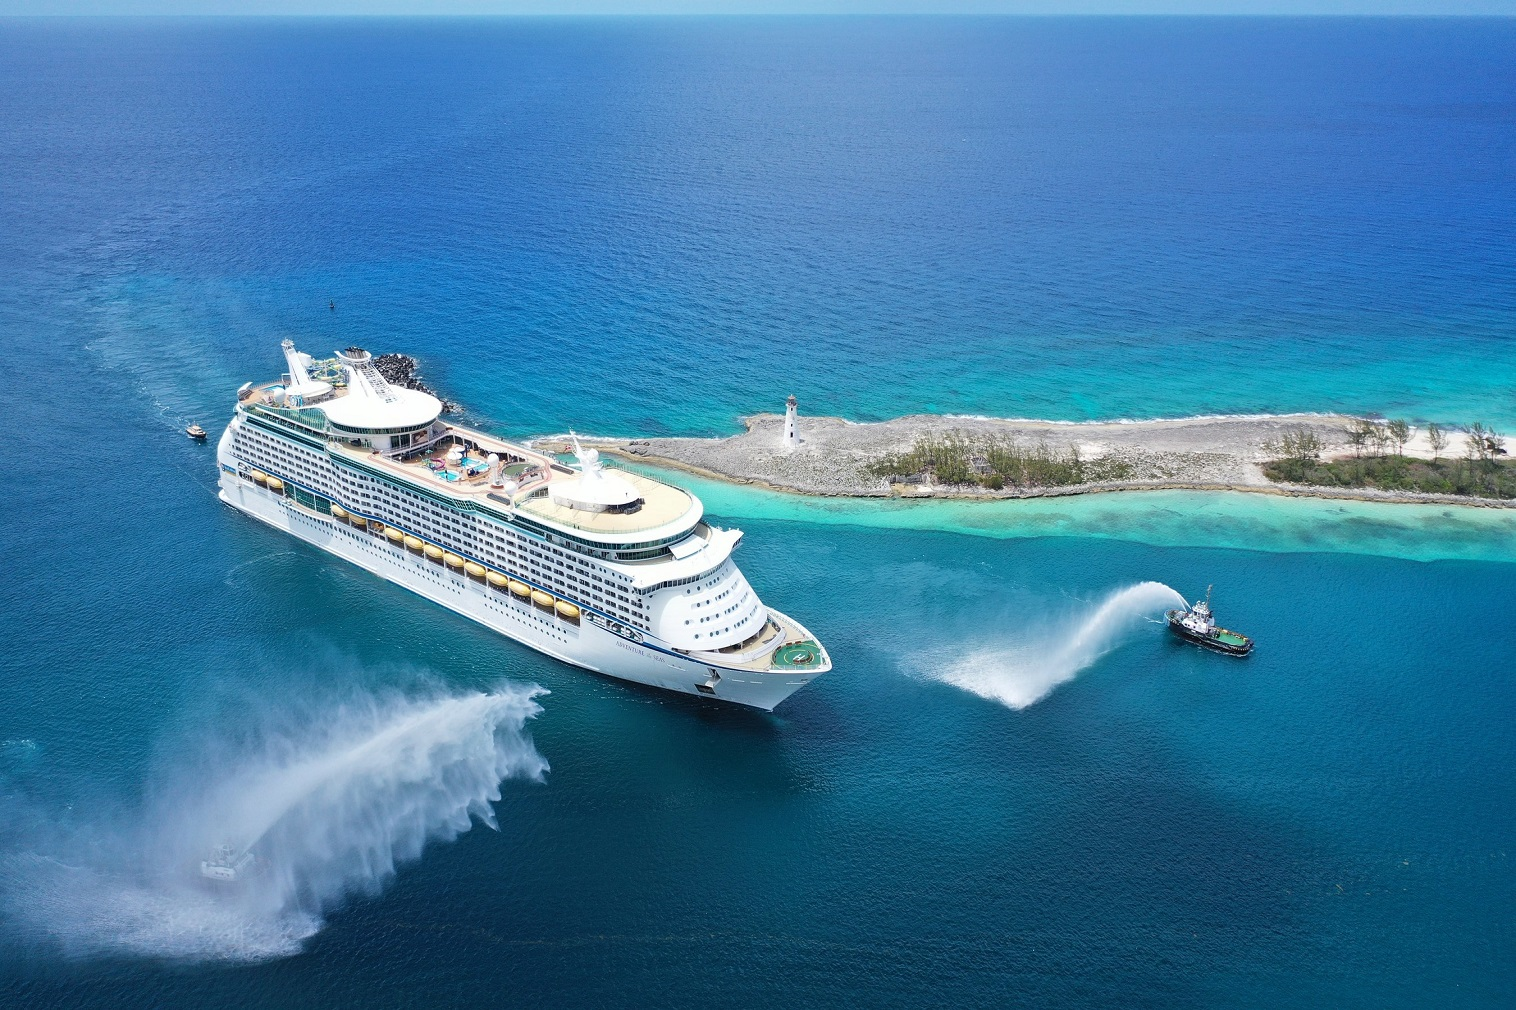 Adventure of the Seas completed its inaugural homeporting ceremony in Grand Bahama Island, with 1,000 passengers!